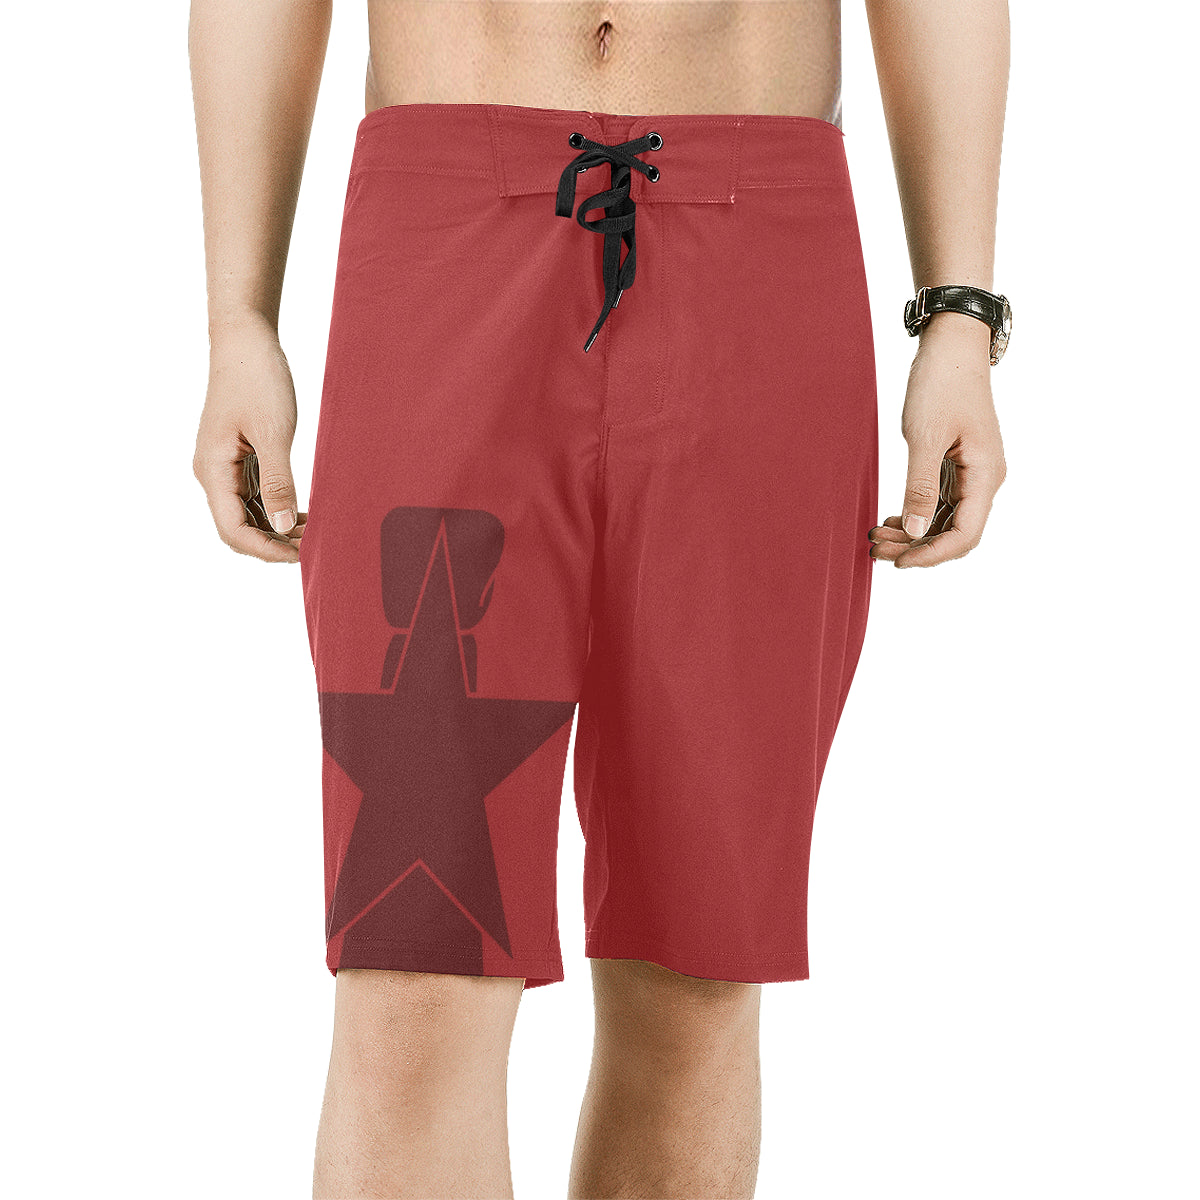 CNMI Seal Saipan Red Men's All Over Print Board Shorts